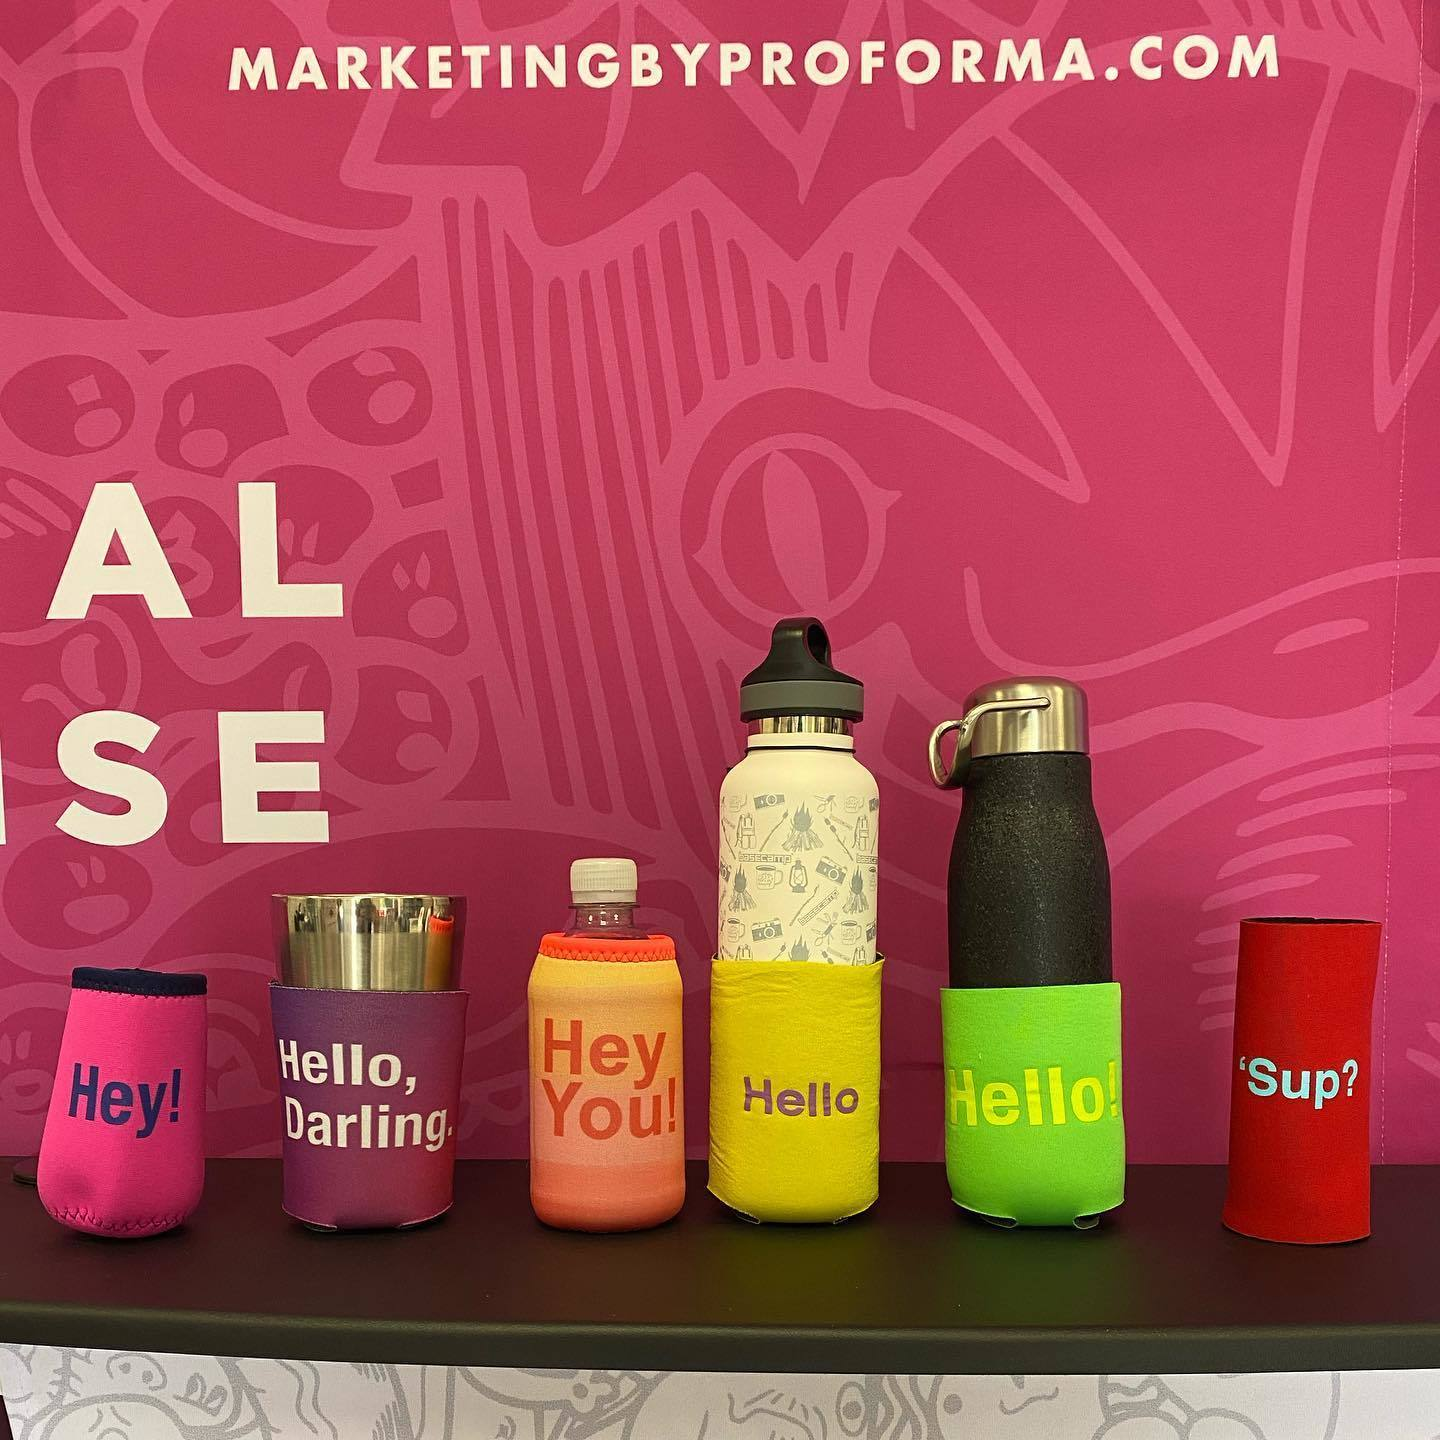 A&G Marketing- Thoughts on the Stereotypical Meaning of Colors